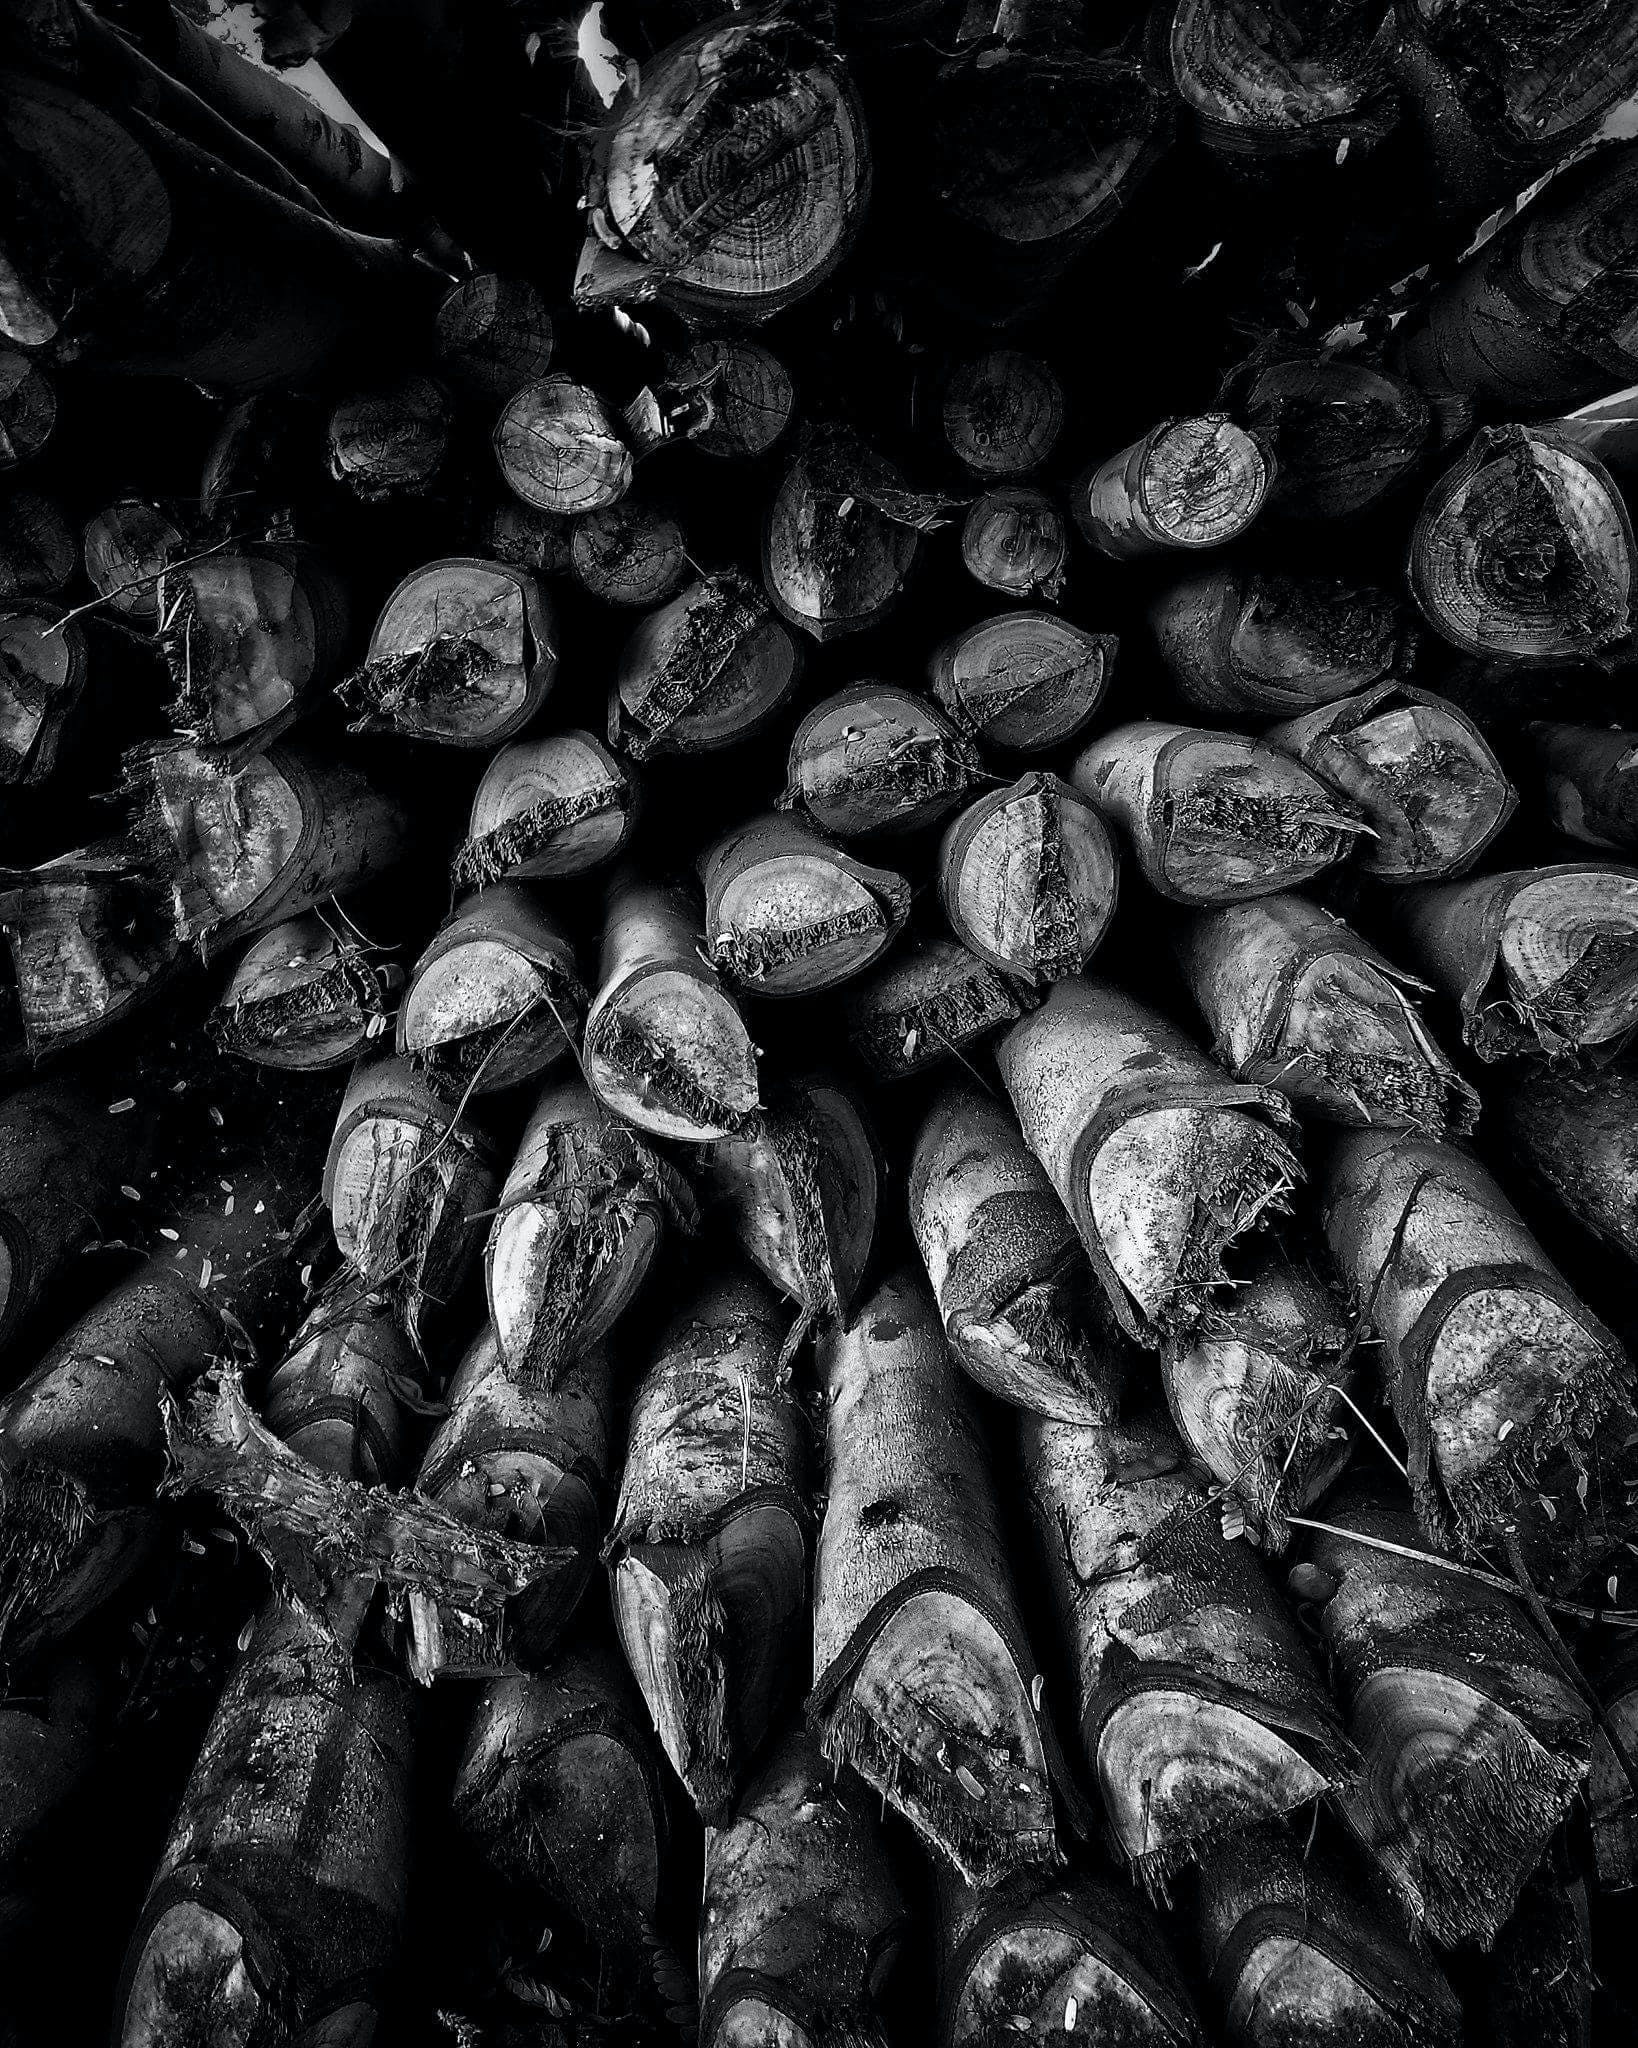 Free stock photo of wooden logs